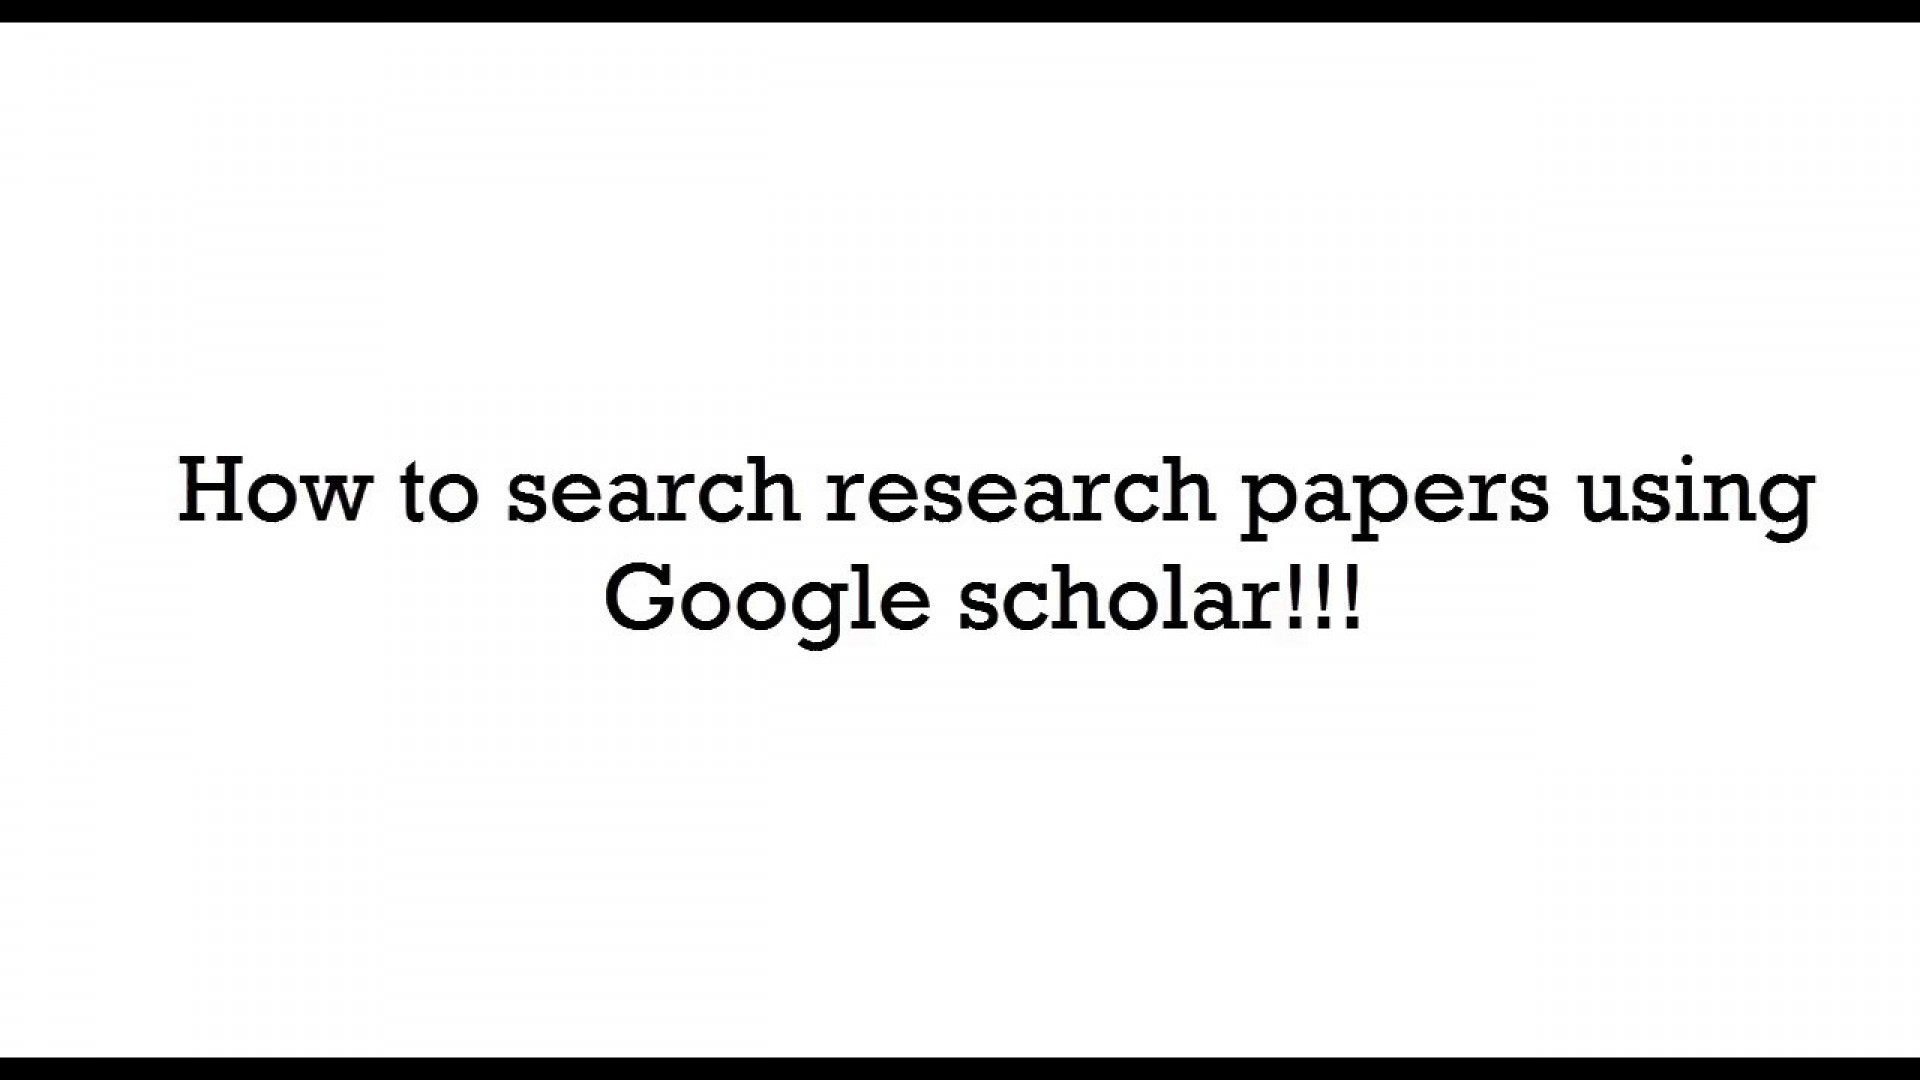 007 Research Paper Search Papers Impressive Best Engine For Meta 1920